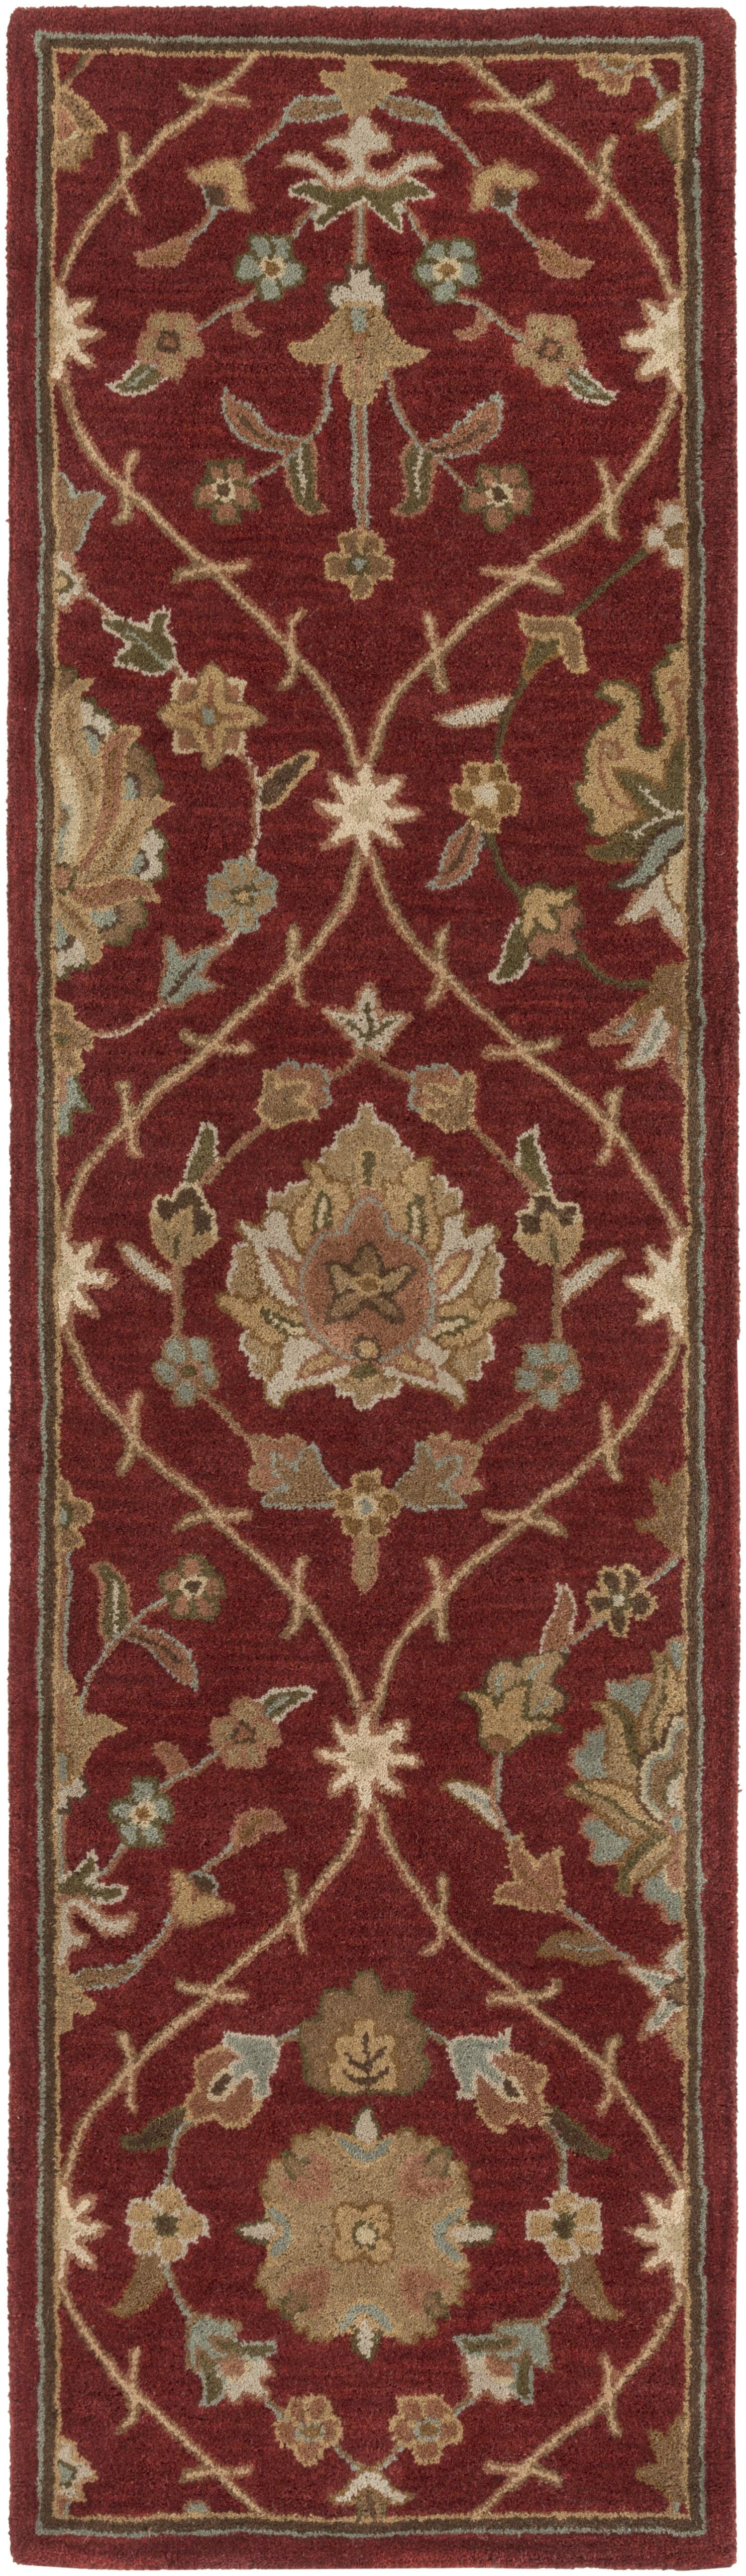 Phinney Hand-Tufted Red Area Rug Rug Size: Runner 2'3